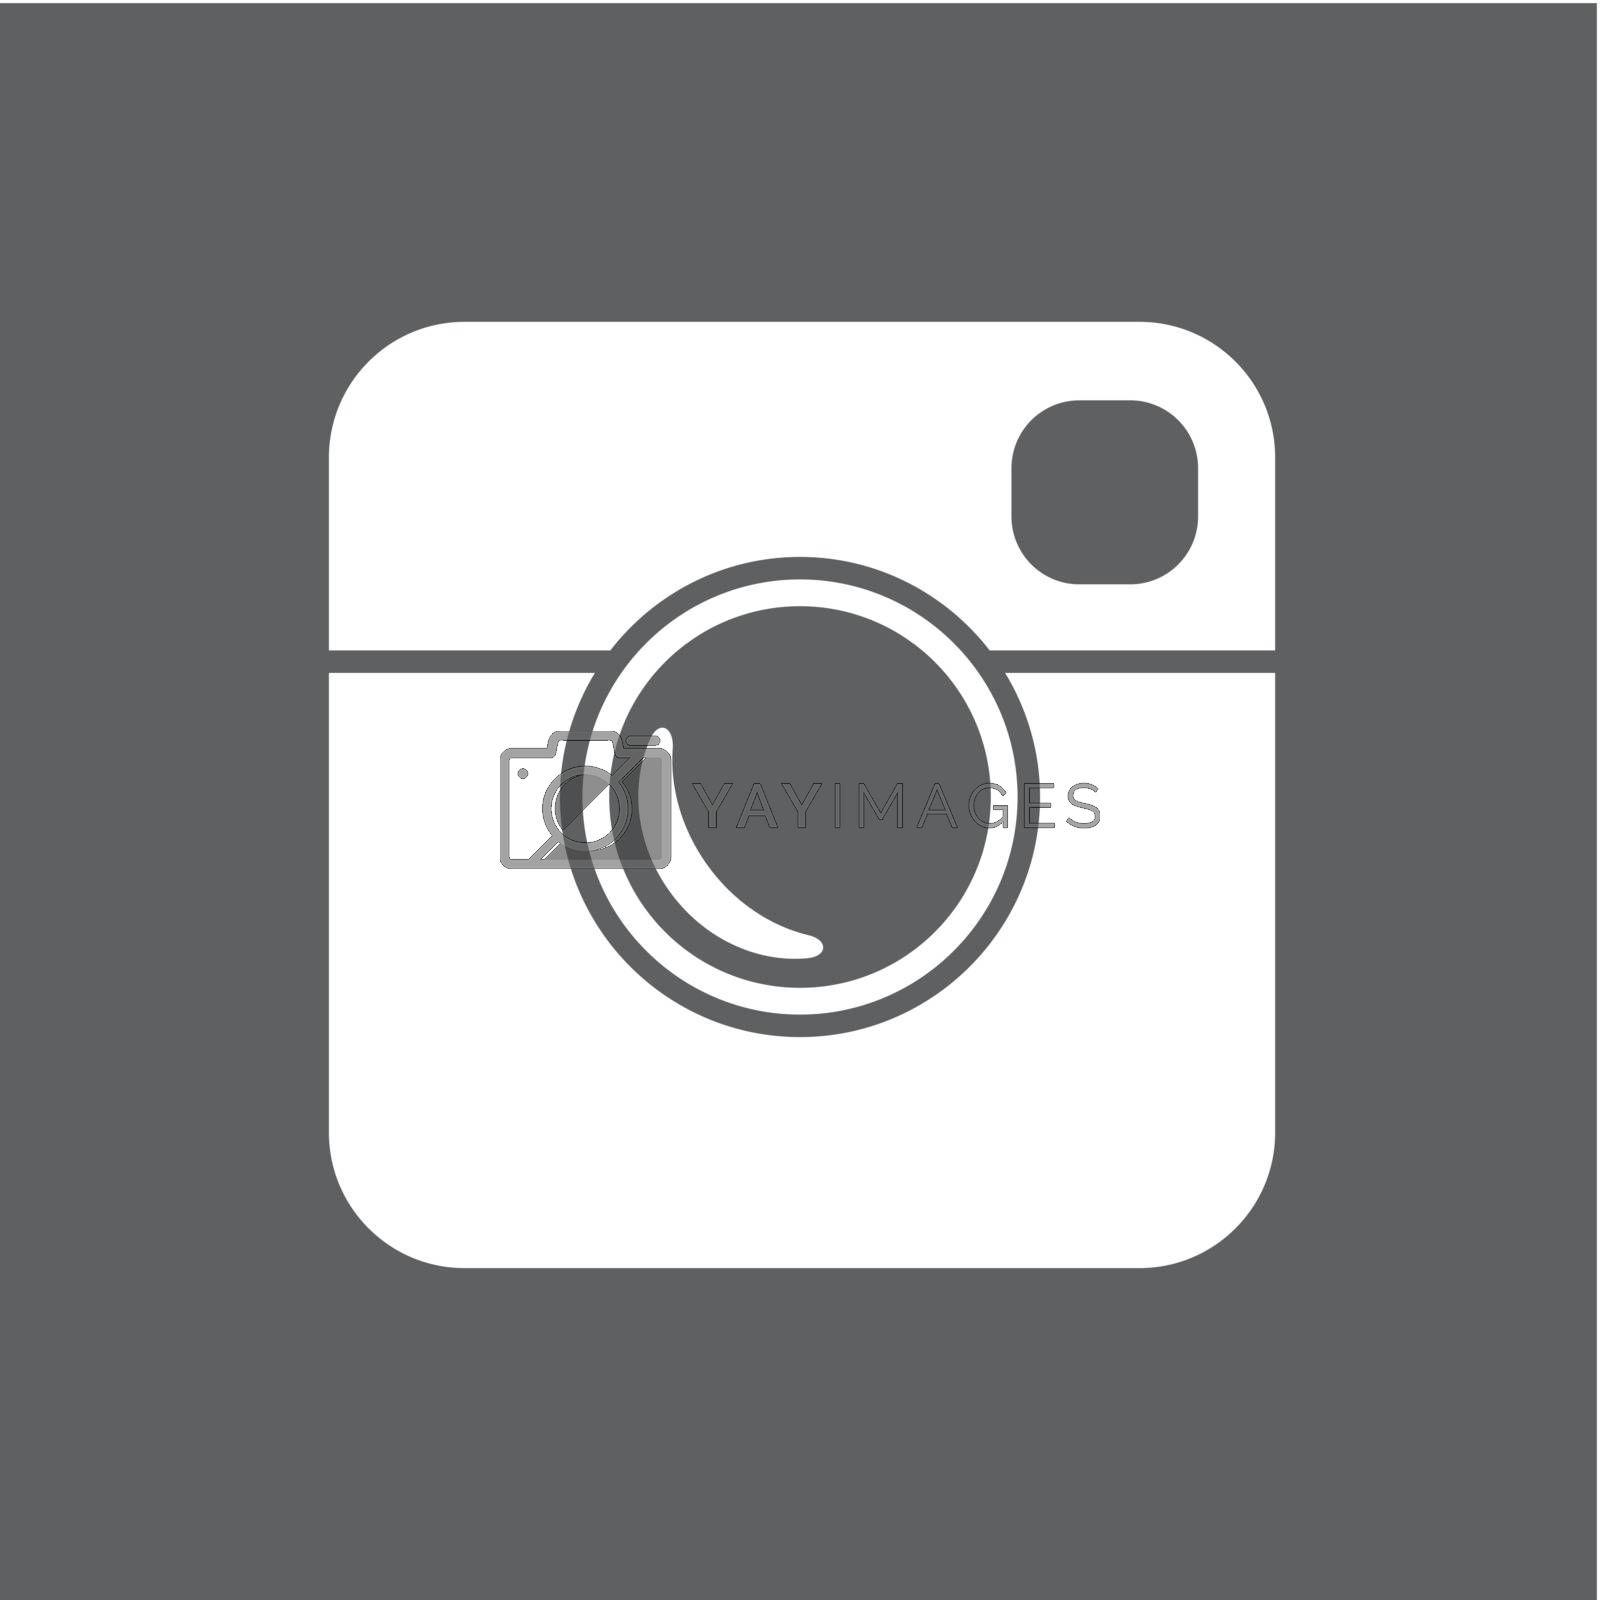 Royalty free image of Simple Hipster Photo Icon by pashabo